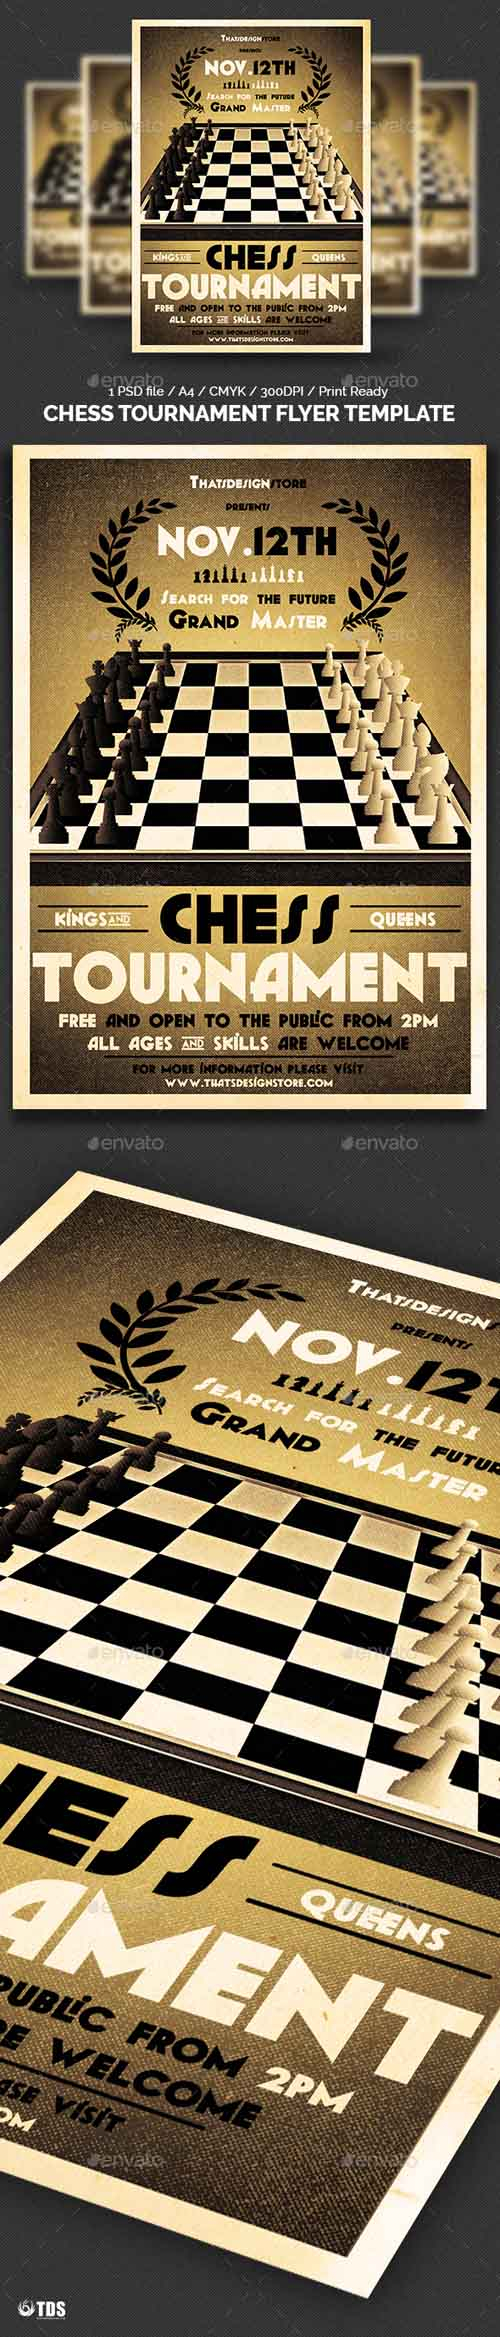 Chess Tournament Flyer Template 10049895